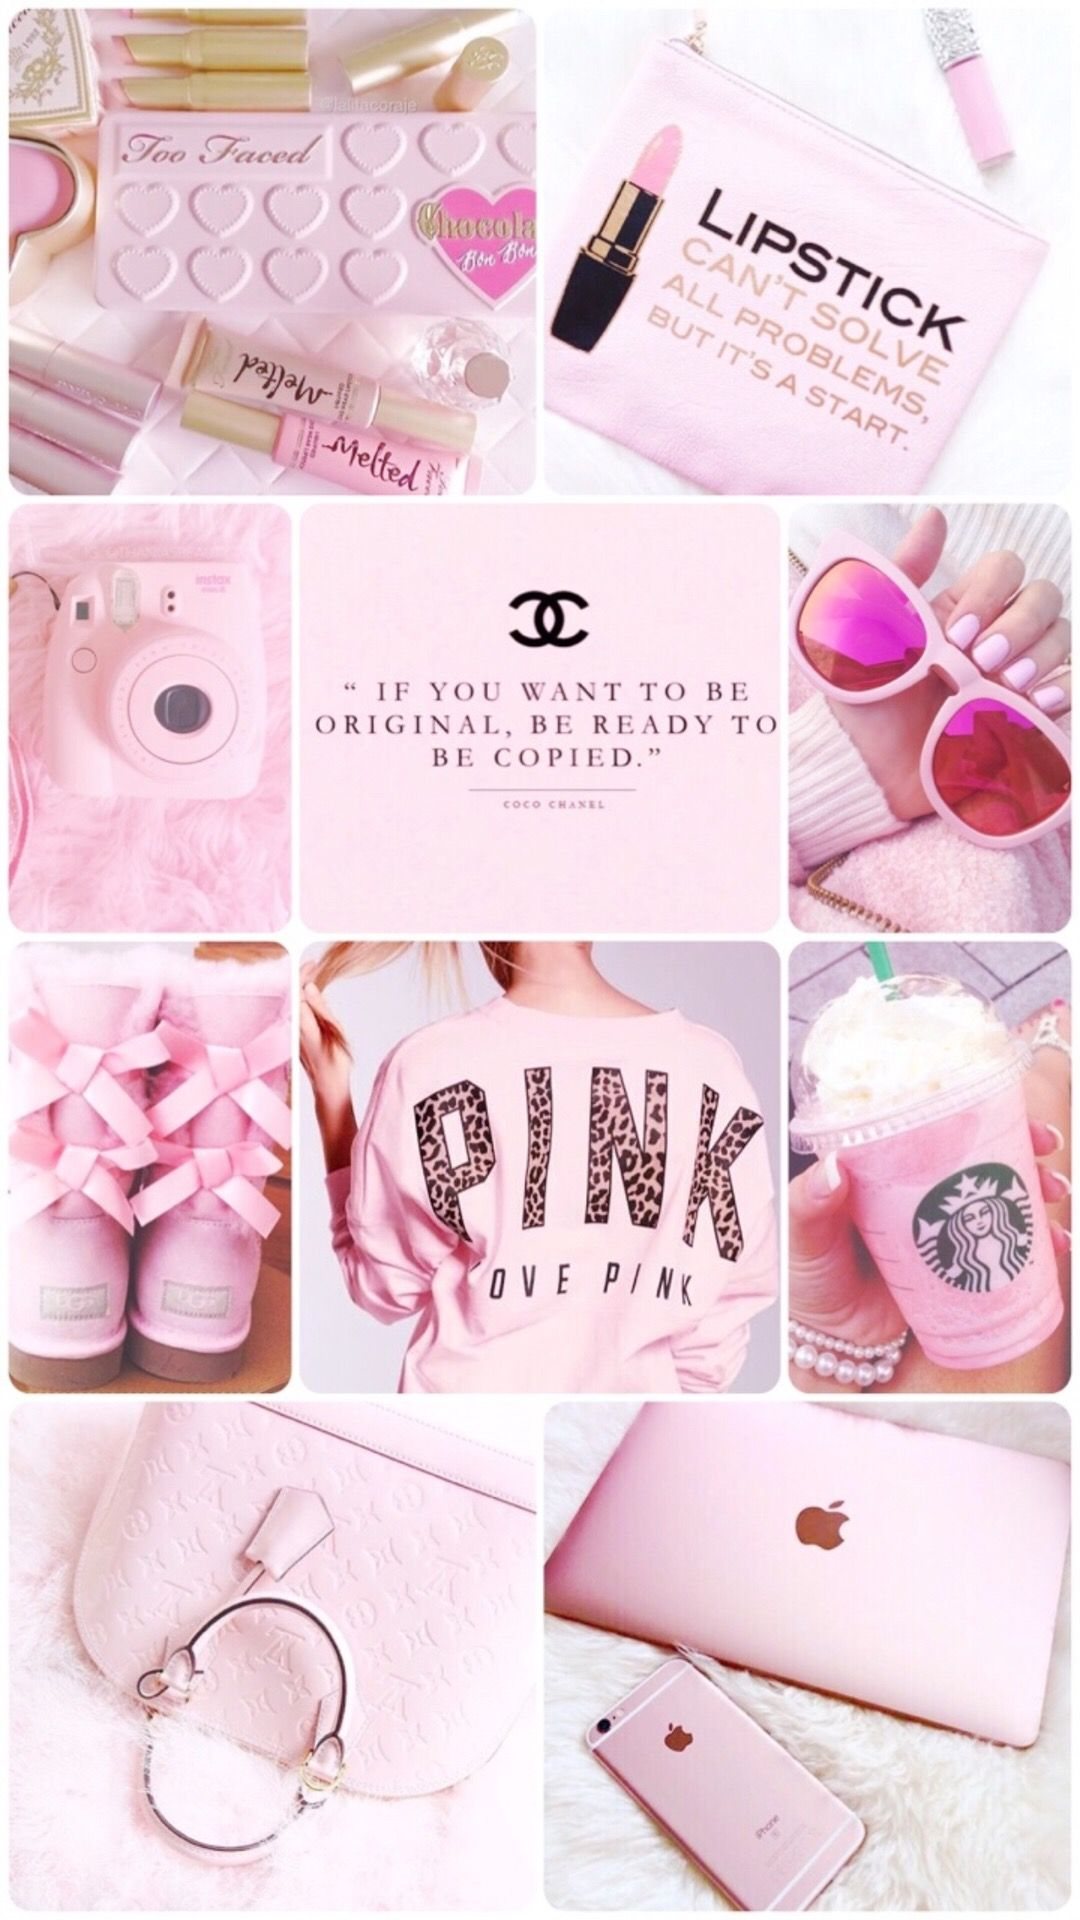 iPhone iPhone_wallpaper pink cute girly Pink